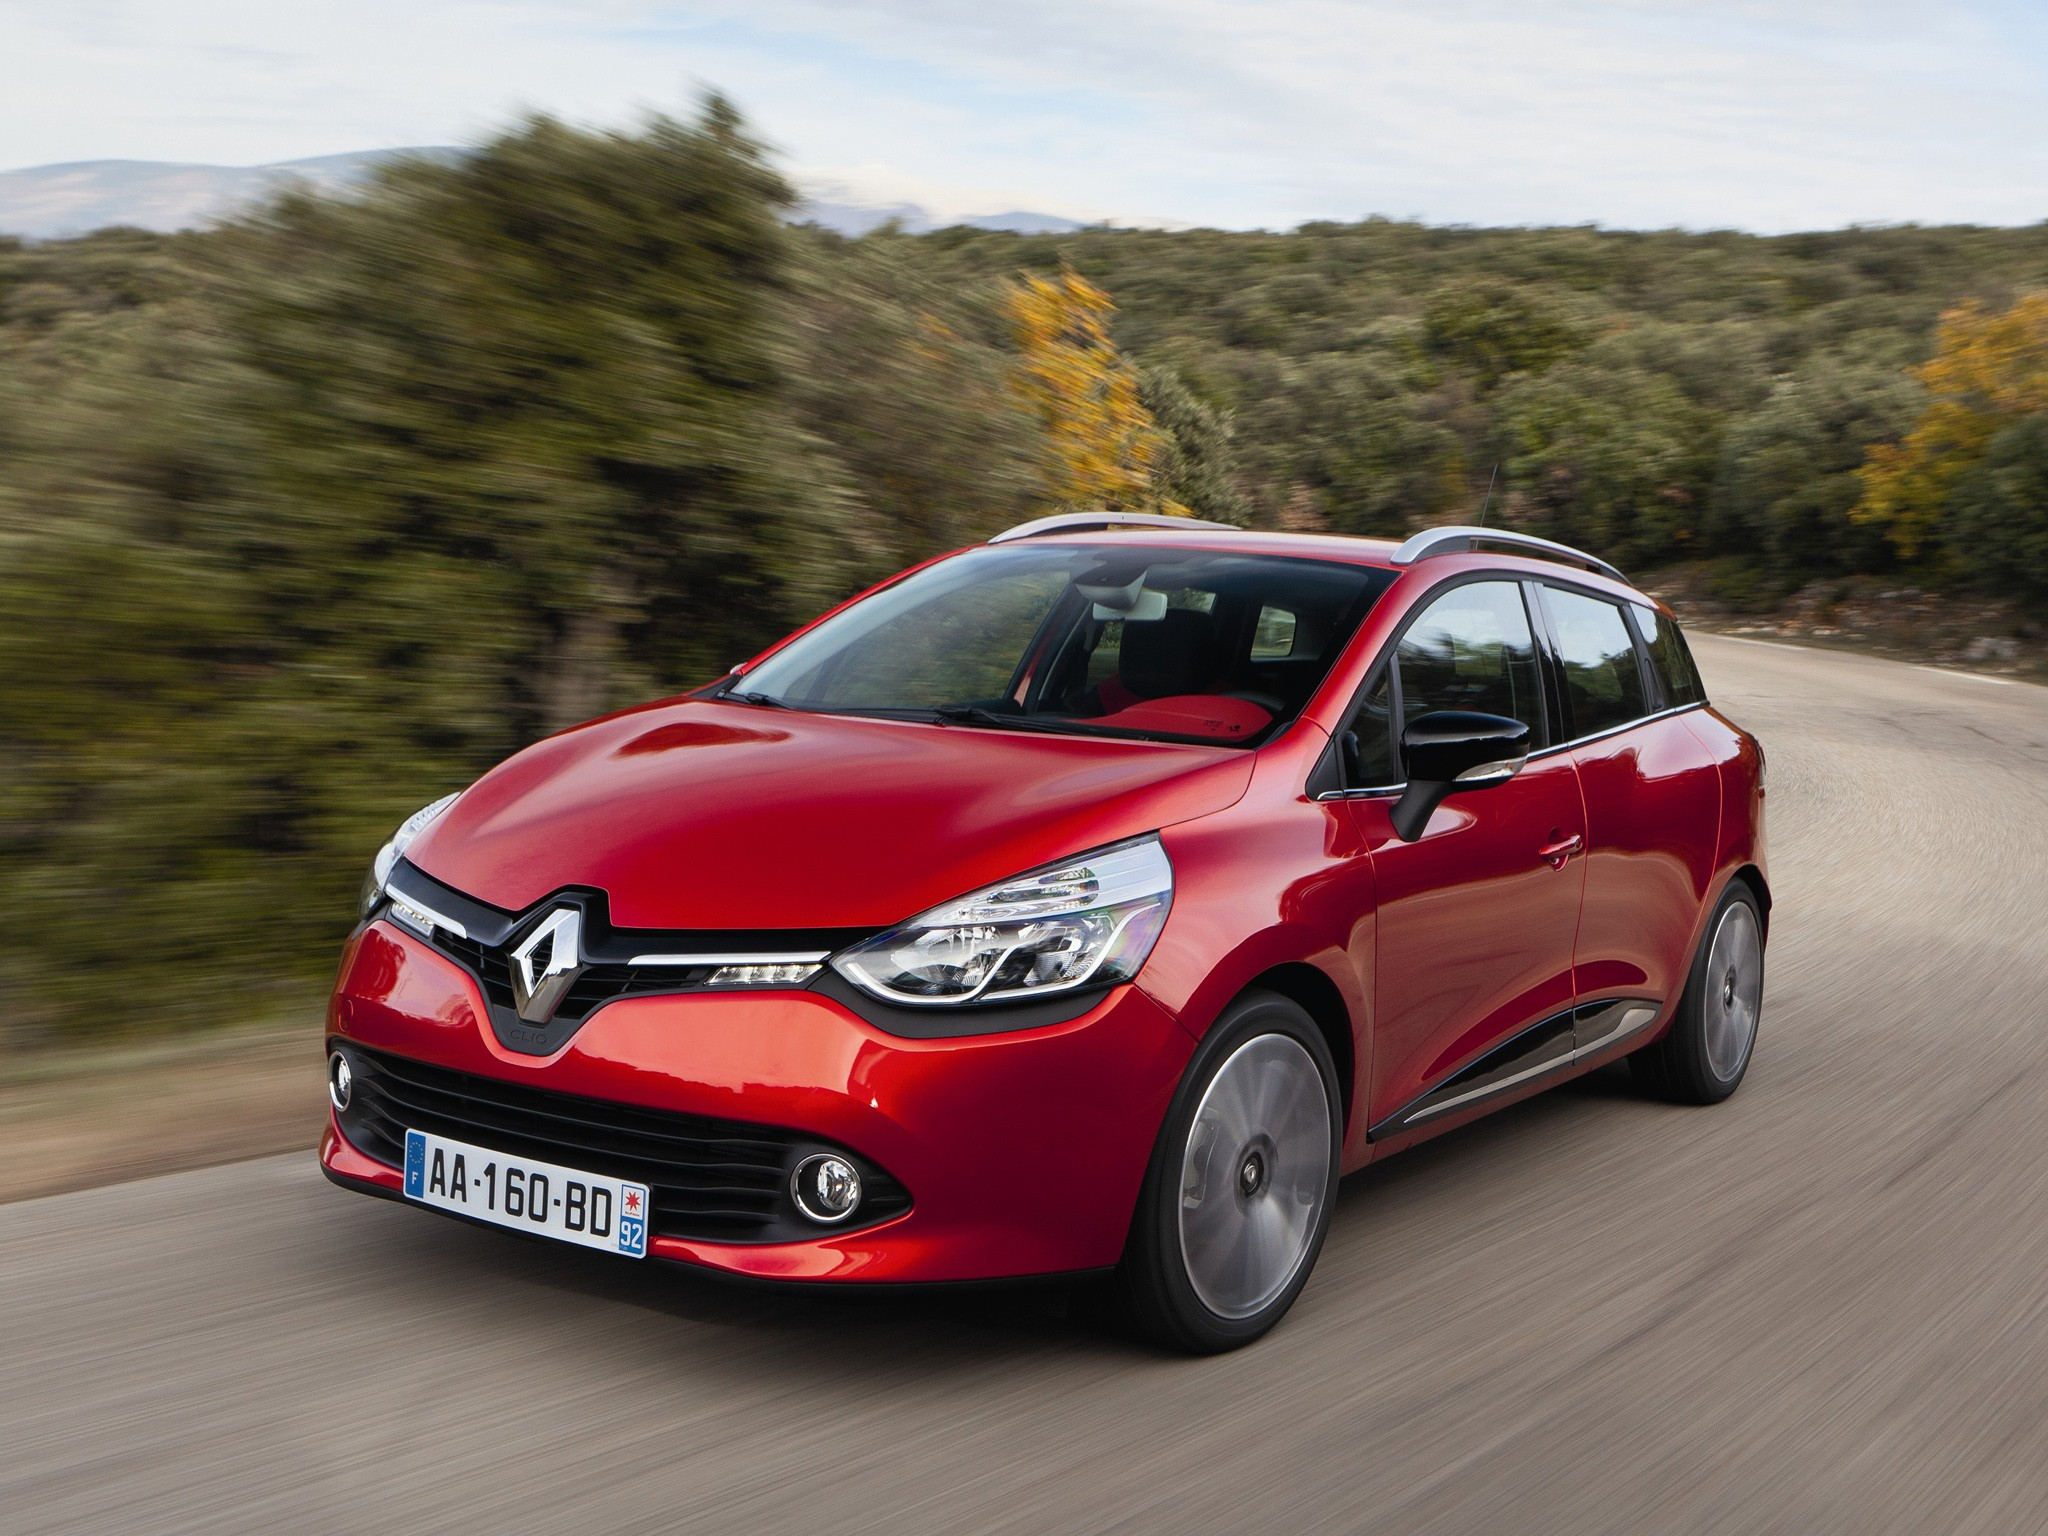 Renault clio estate specs 2013 2014 2015 2016 for Clio bianco avorio